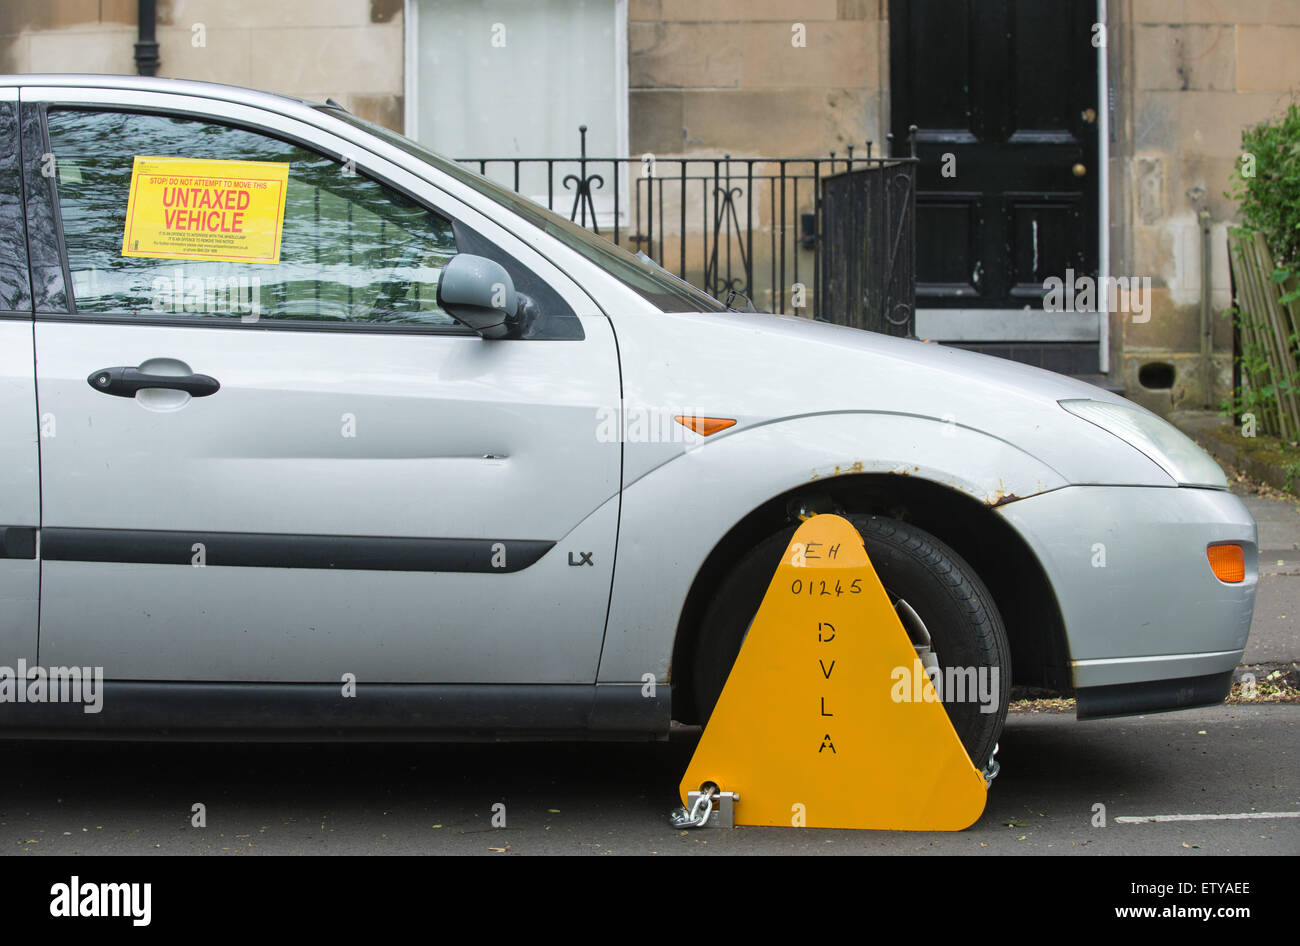 Wheel Clamp on an untaxed vehicle ( Ford Focus ) in Edinburgh, Scotland.  picture by Alex Hewitt Stock Photo